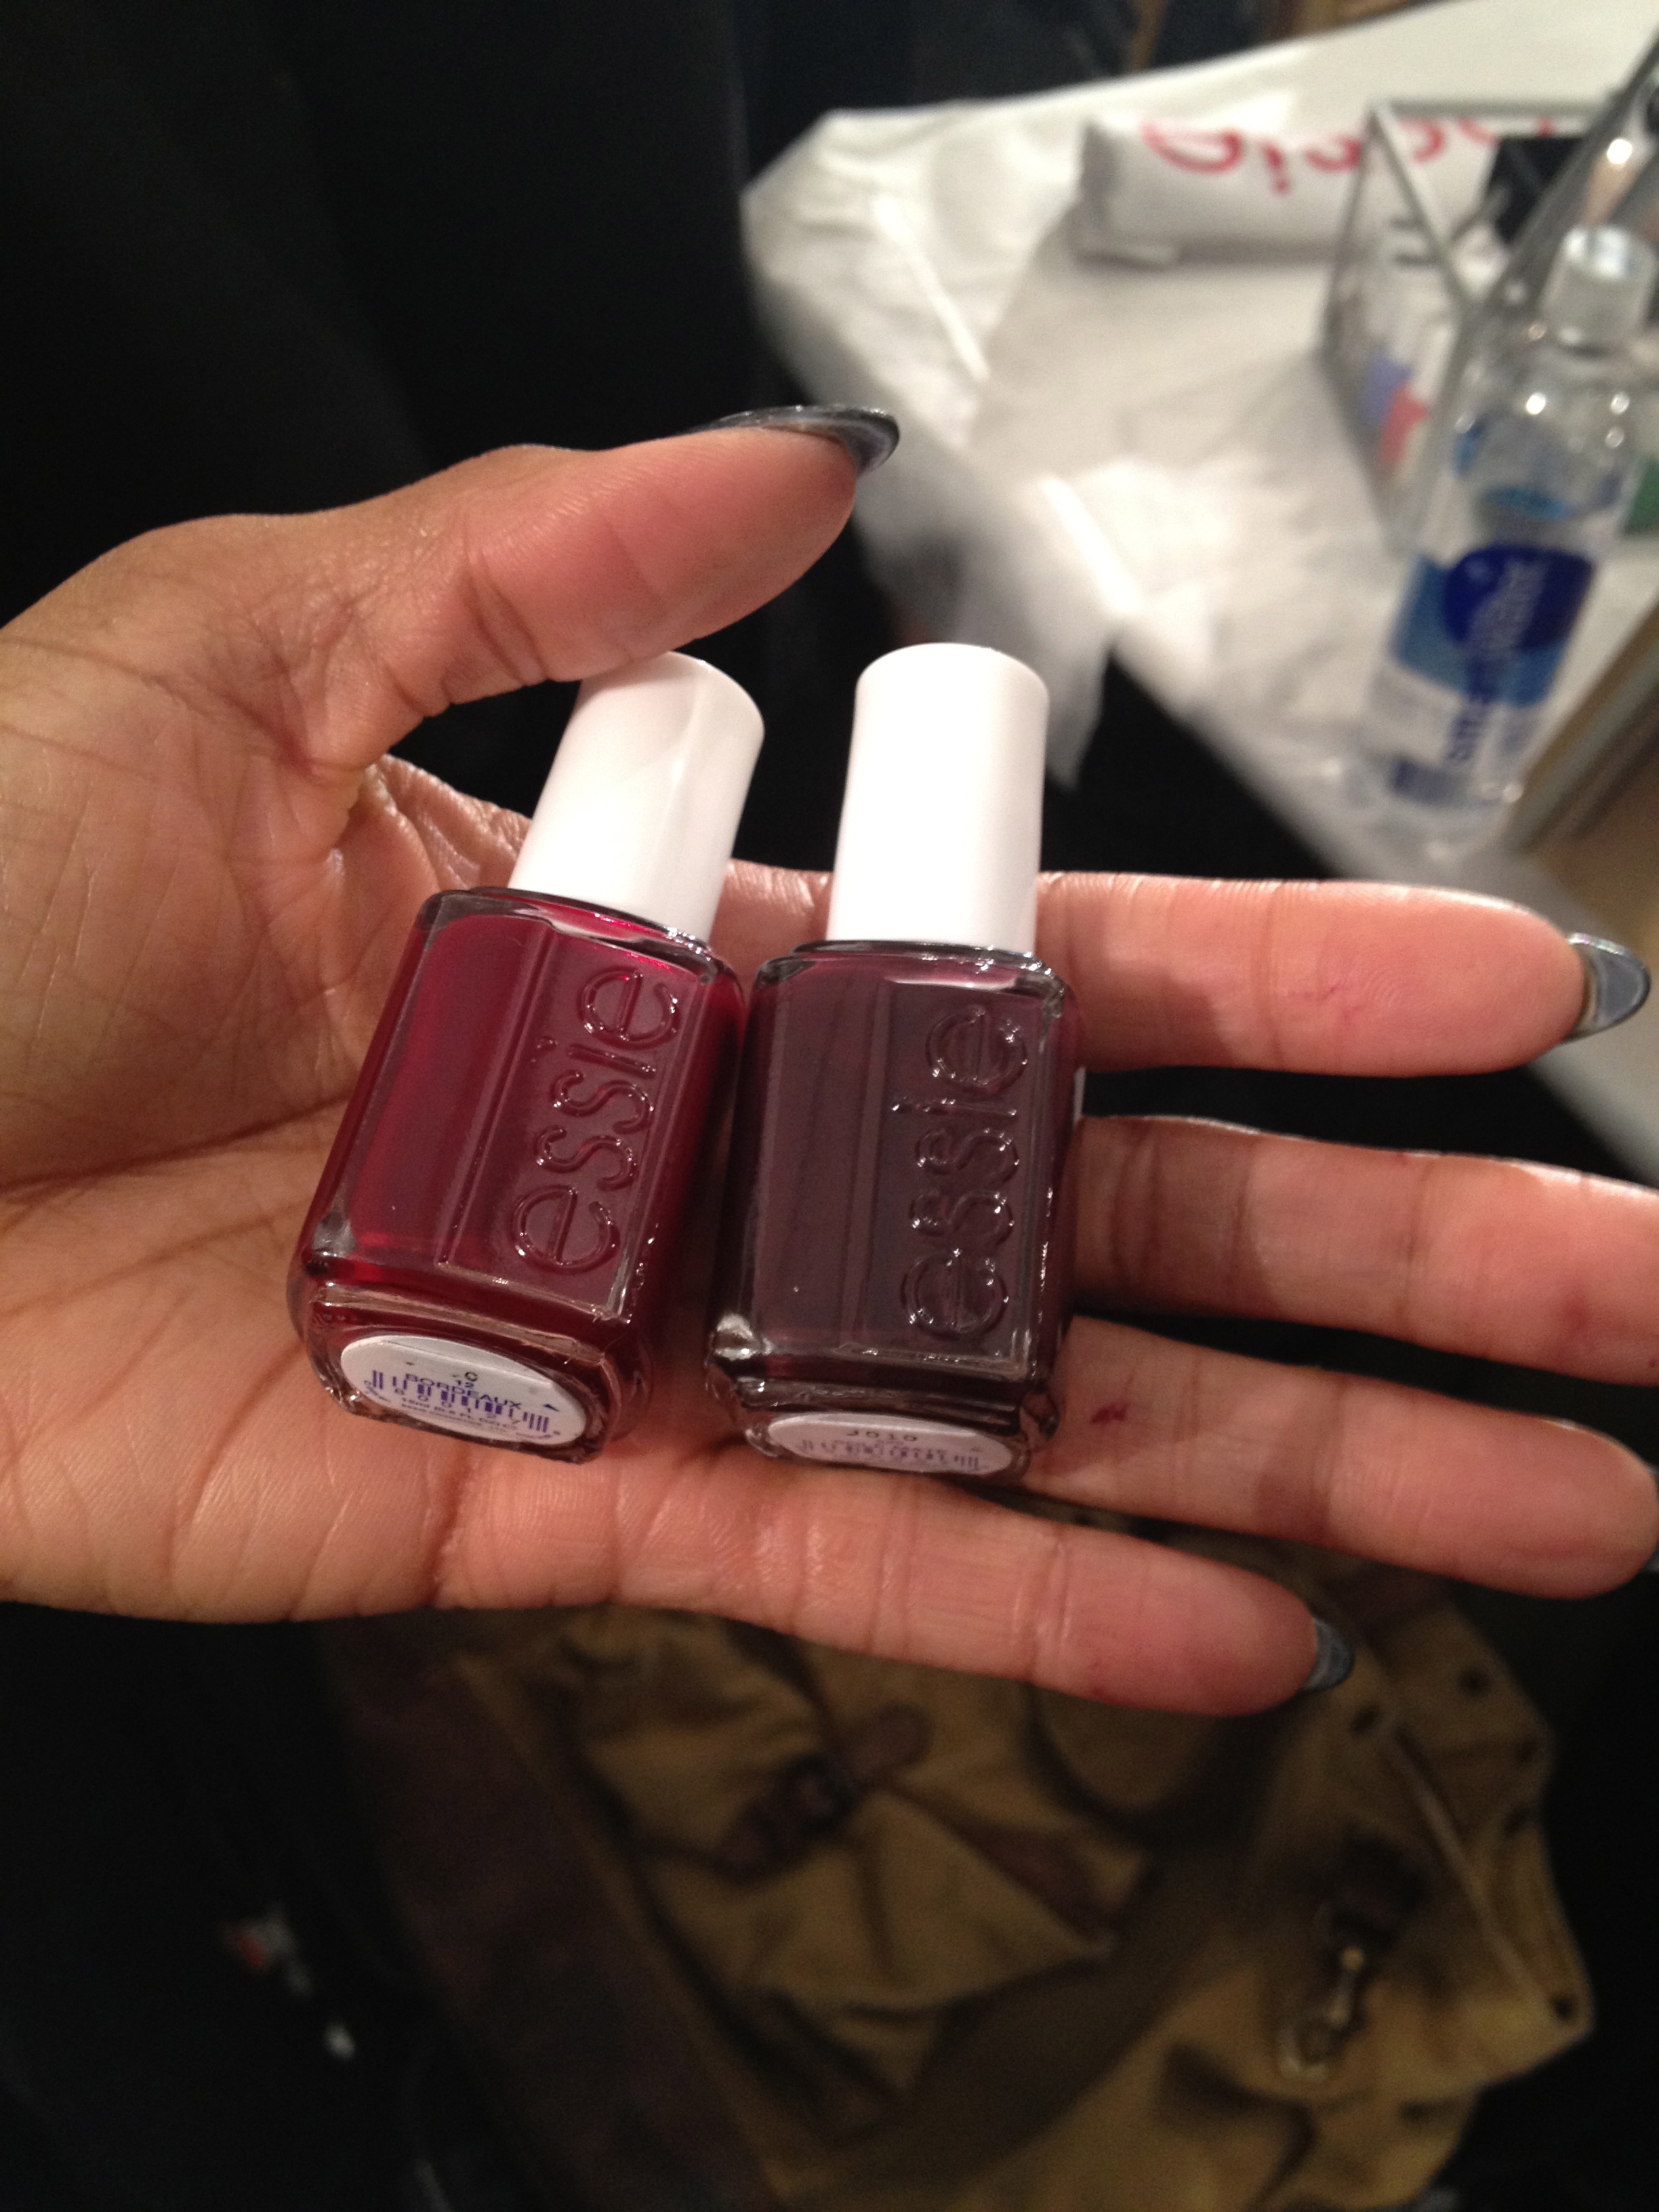 Essie Bordeaux and Sole Mate for mani pedi.